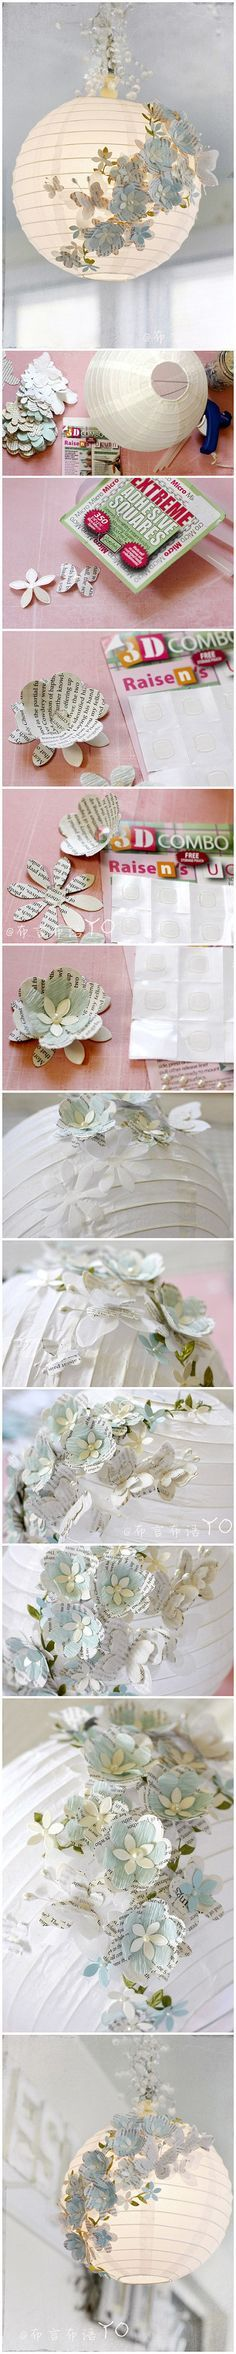 10 Delicate DIY Projects Ideas To Emphasize Your Decor